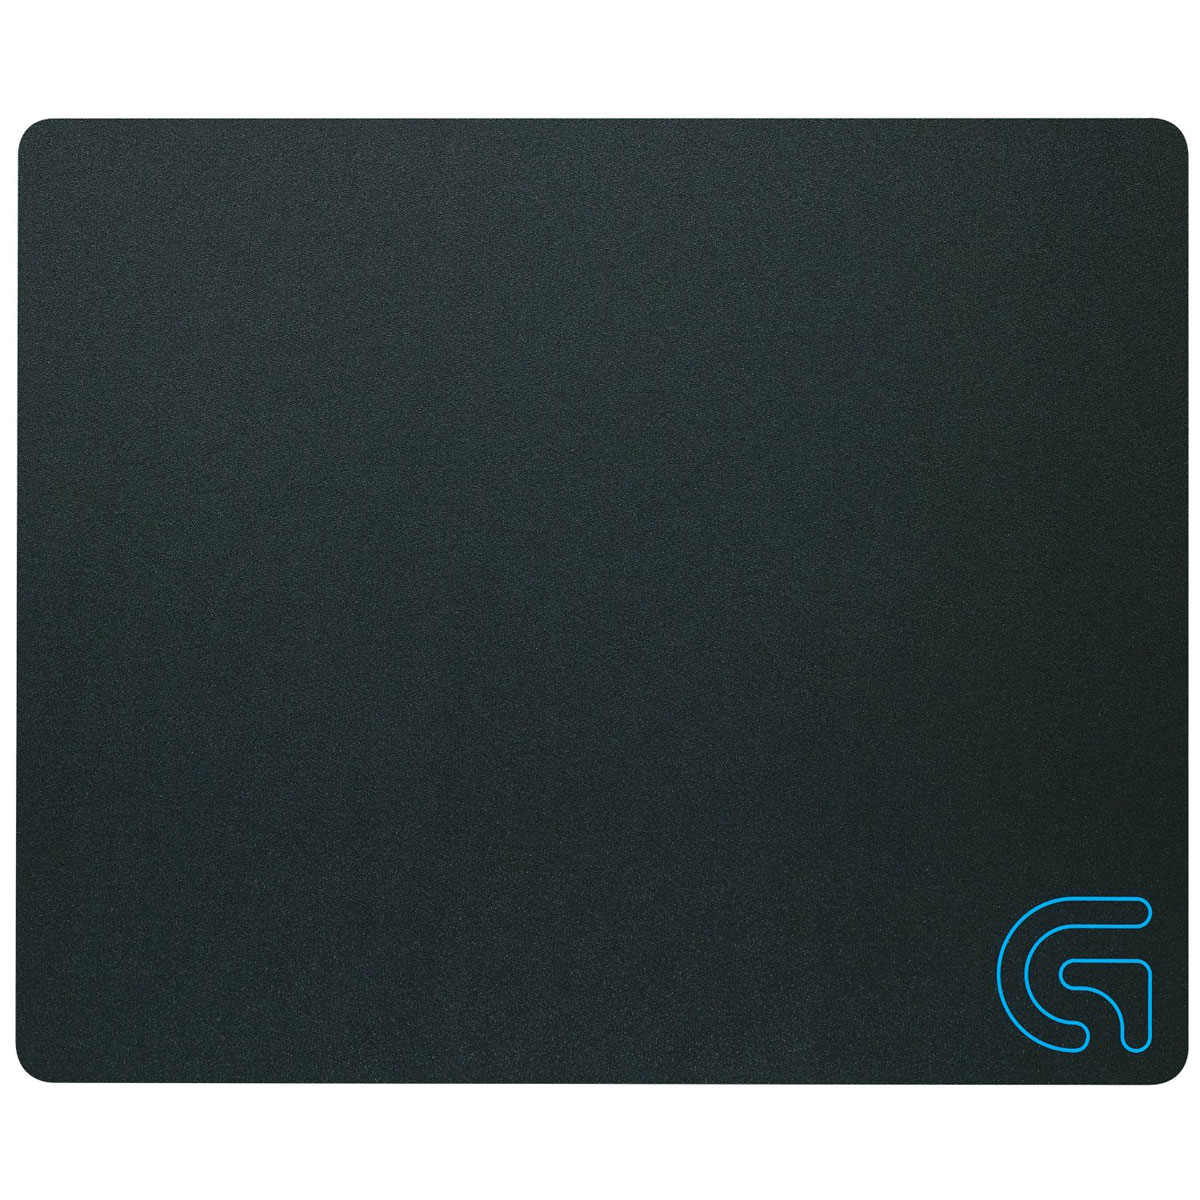 logitech g440 hard gaming mouse pad tapis de souris logitech sur. Black Bedroom Furniture Sets. Home Design Ideas